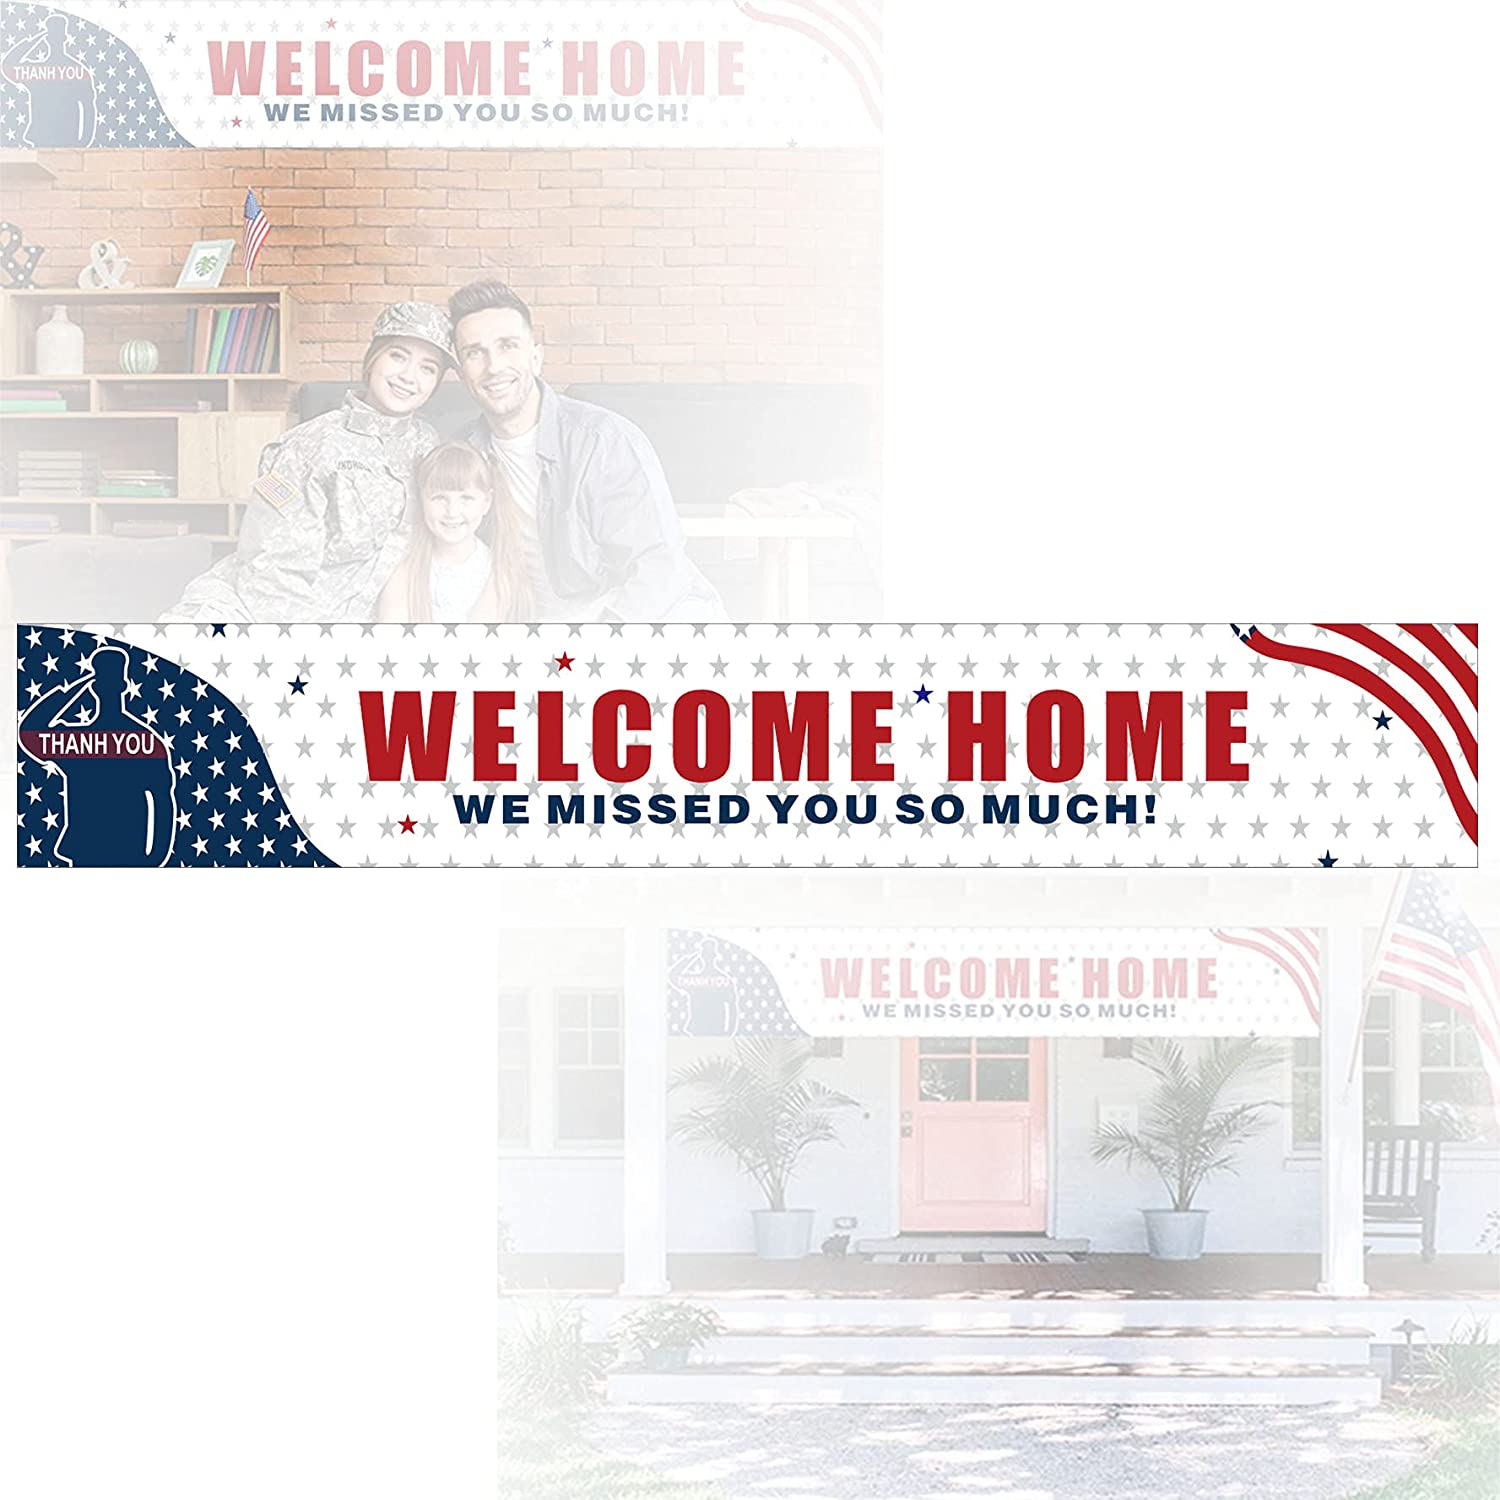 Welcome Home Large Banner, We Missed You So Much for Party Slogan, Military Army Homecoming Party Decorations Indoor Outdoor Backdrop 9.8 x 1.6 Feet